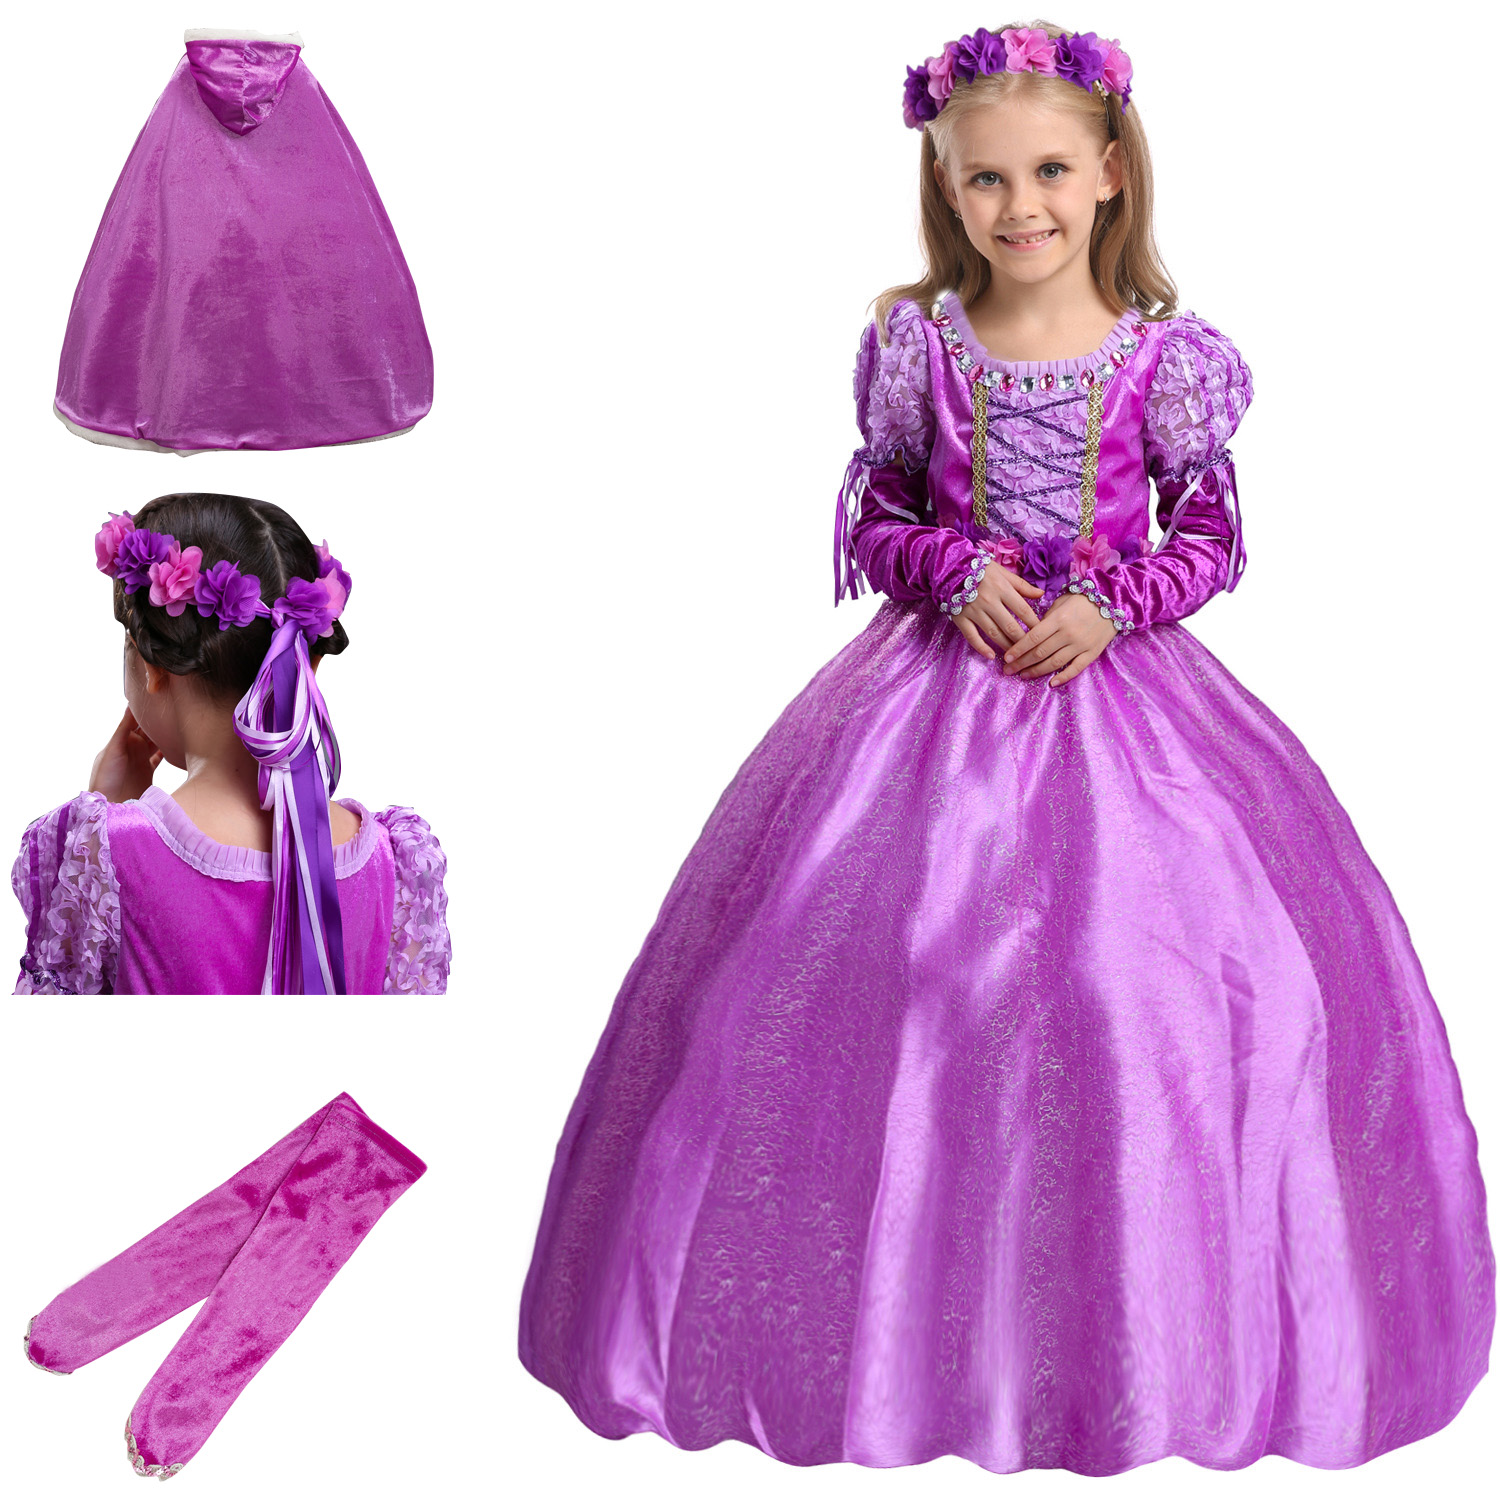 Kid Dress New Year Long Children Carnival Costumes Boutique Girls Christmas Outfits Set Long Sleeves Princess Cosplay for Girls children egyptian pharaoh costumes 2016 new cosplay masquerade halloween childen kid suit cleopatra royal fantasia disfraces